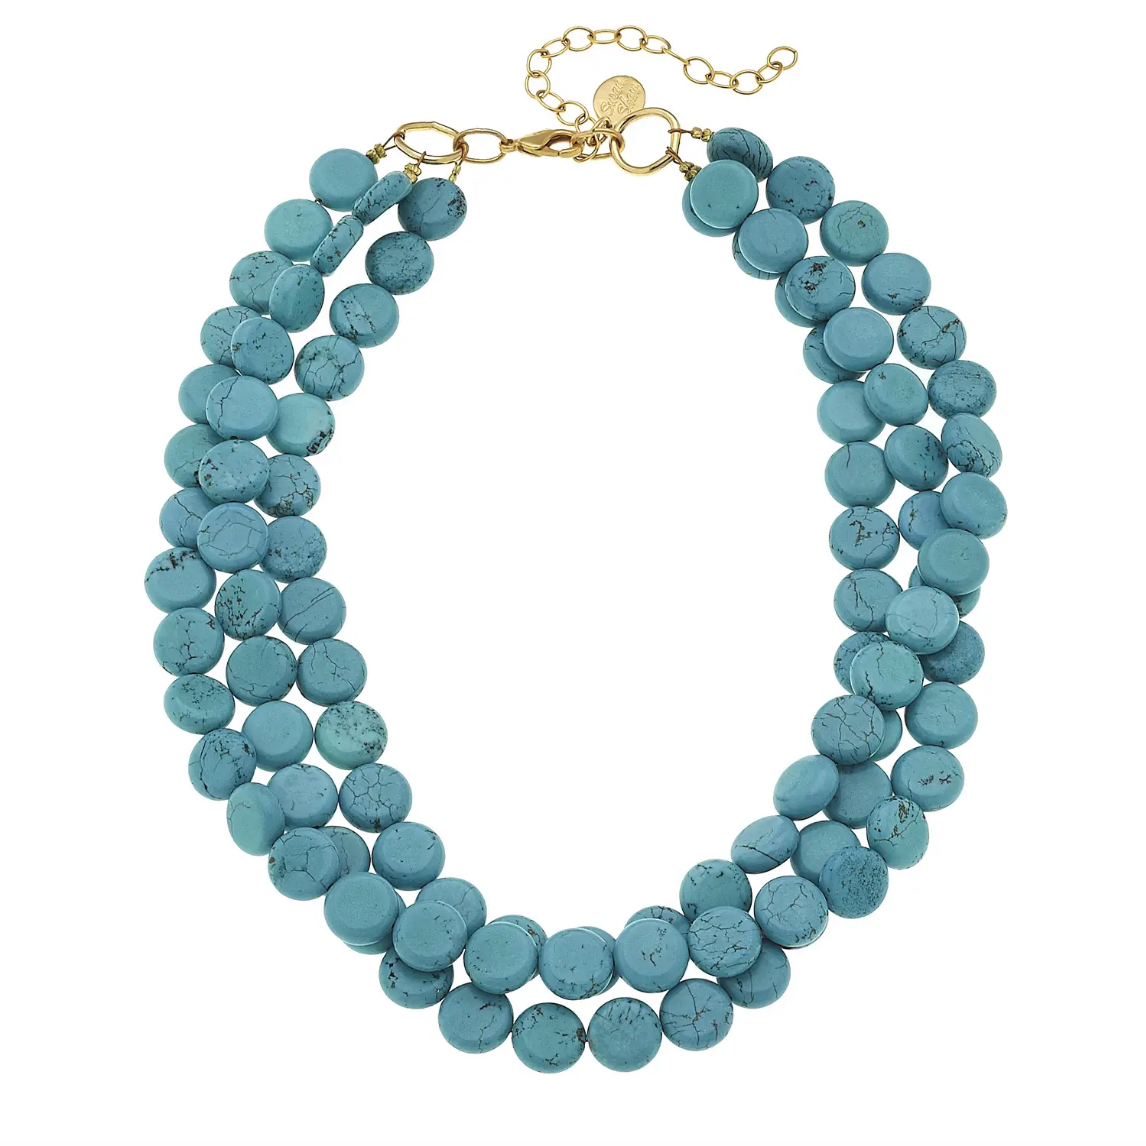 3-Strand Genuine turquoise Necklace with Gold Clasp